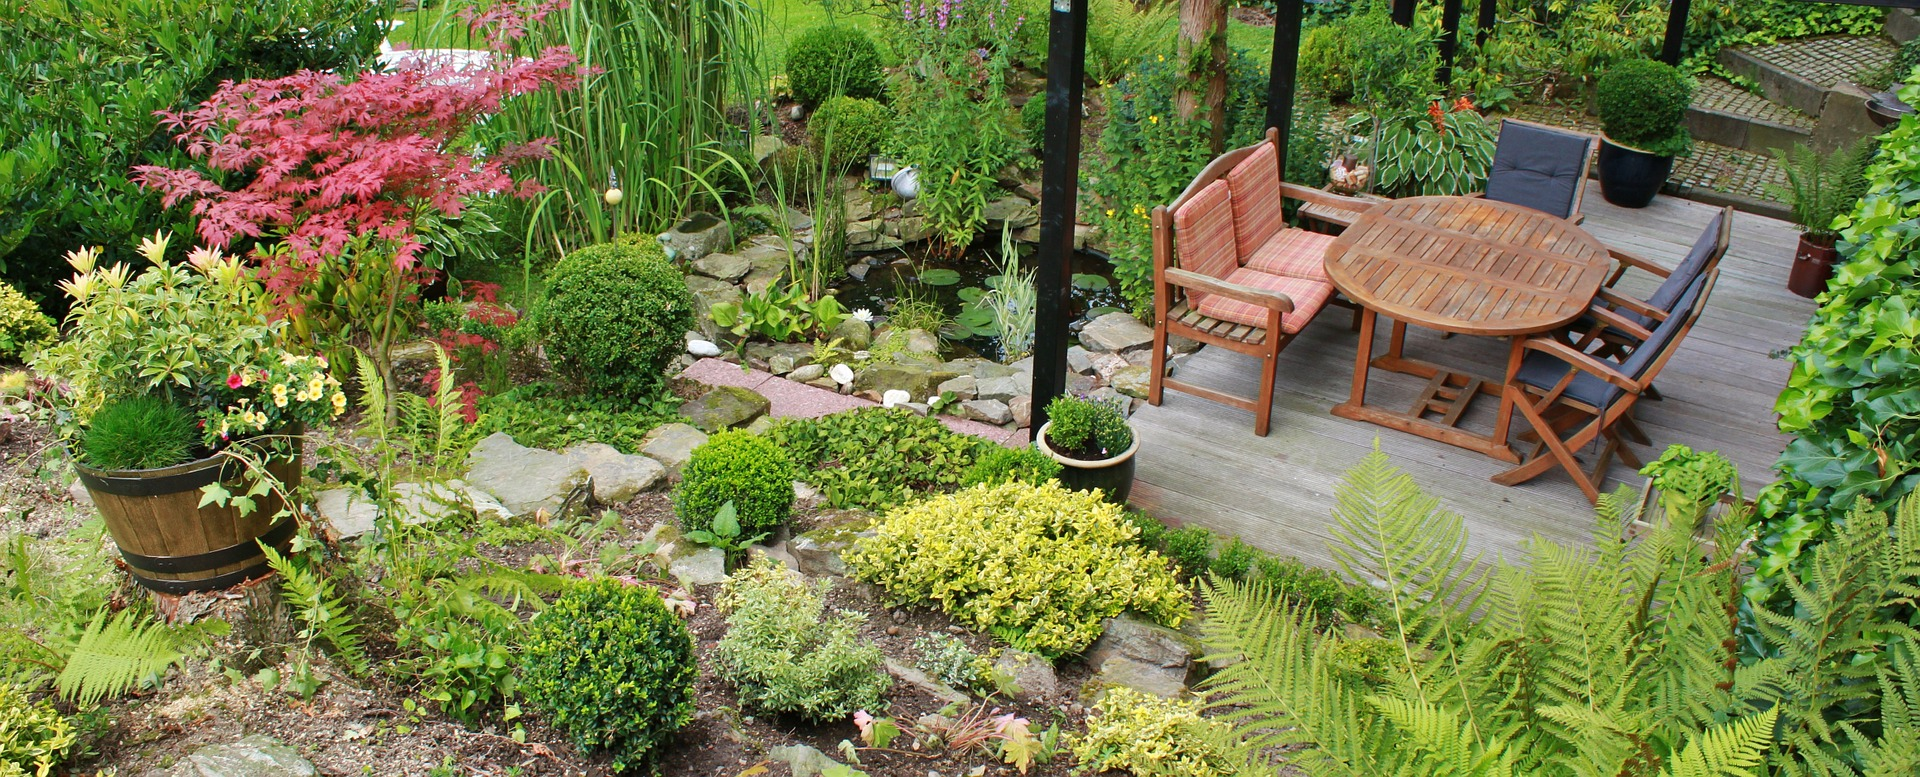 Planning Your Garden for 2019 | Morris's of Usk on tumblr flowers, art garden design, blog garden design, tumblr trees, four square garden design, google garden design, tumblr travel, tumblr bathrooms, home garden design, food garden design, tumblr sport fishing, tumblr wood, pinterest garden design, houzz garden design, tumblr sculpture,